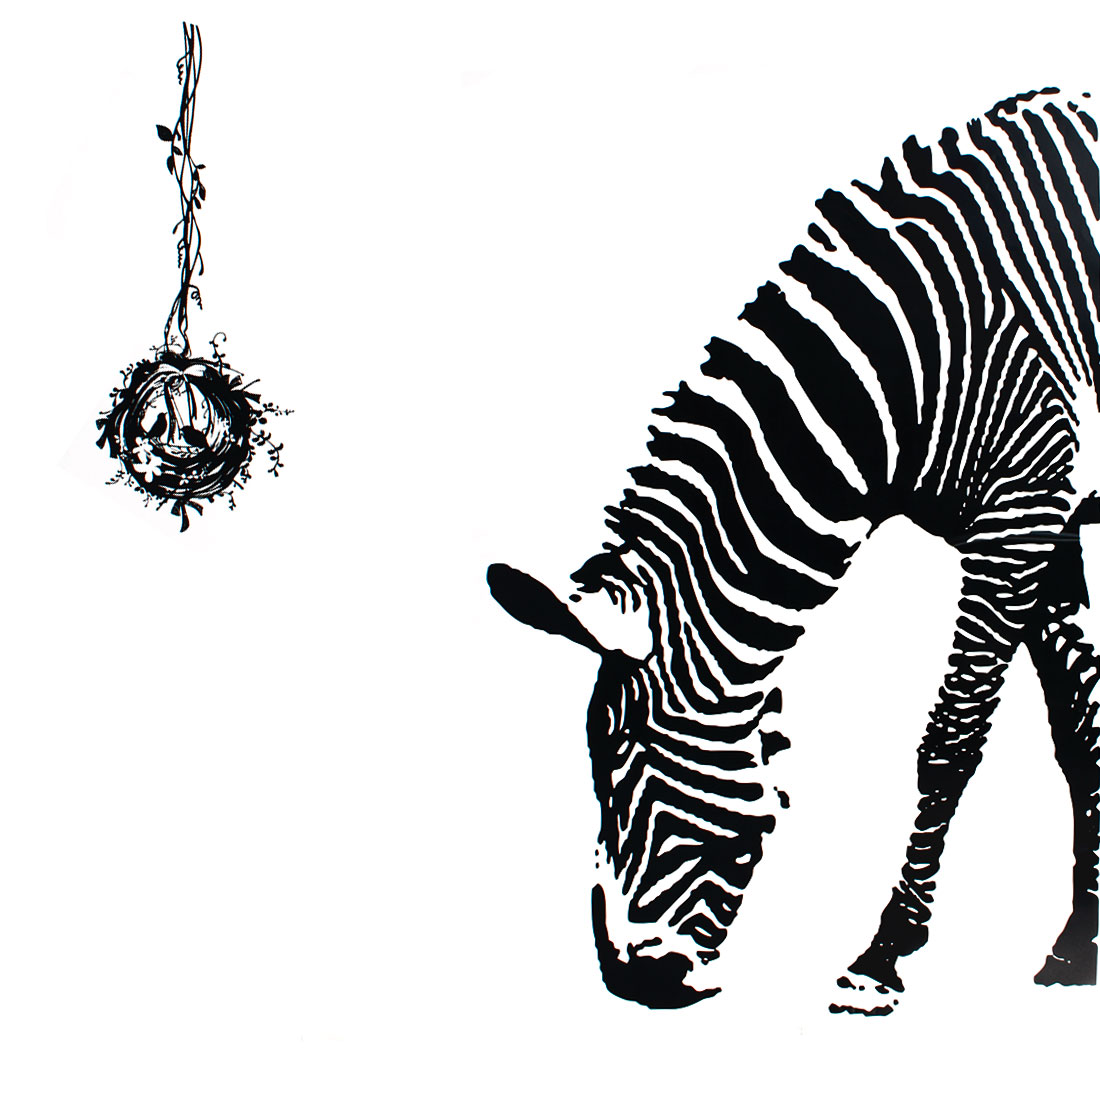 Bedroom Accent Self Adhesive Zebra Animal Wall Sticker Decal 60cmx90cm Black